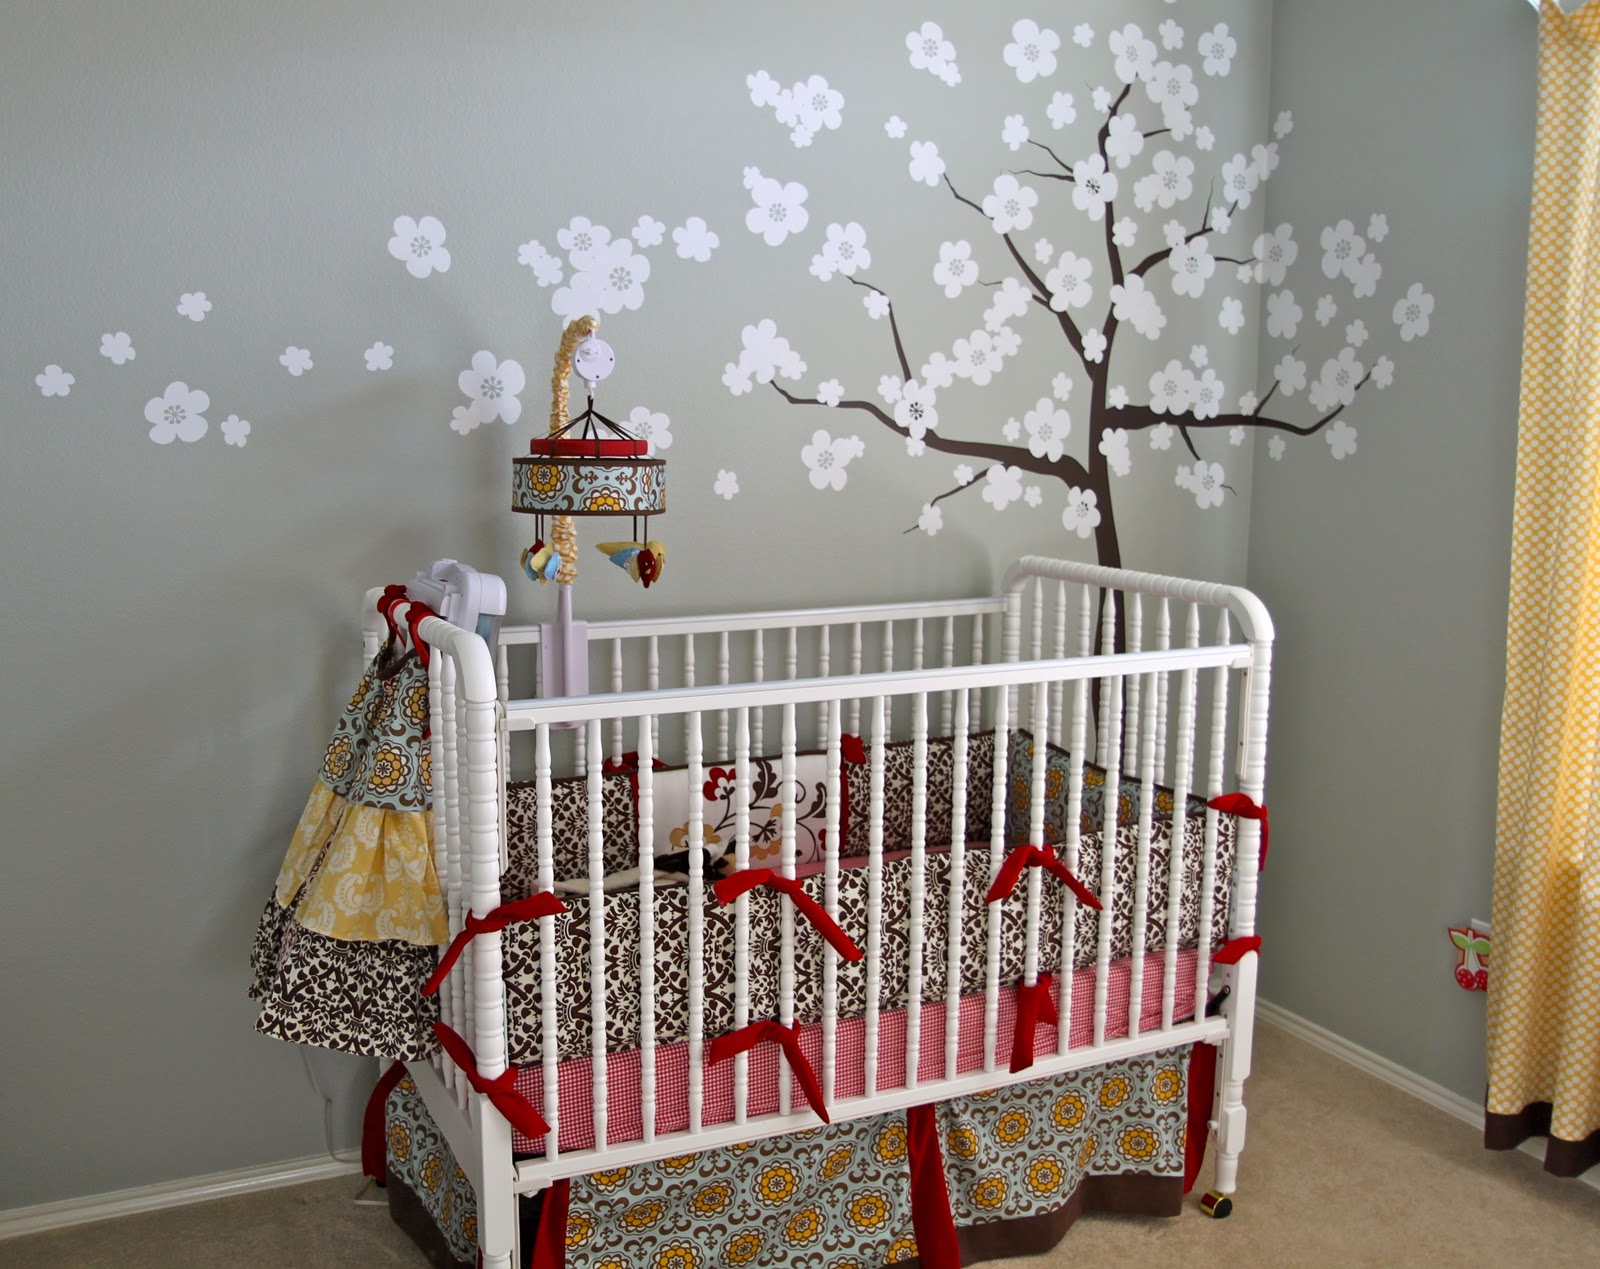 Baby nursery it 39 s quirky and so cute design dazzle for Baby rooms decoration